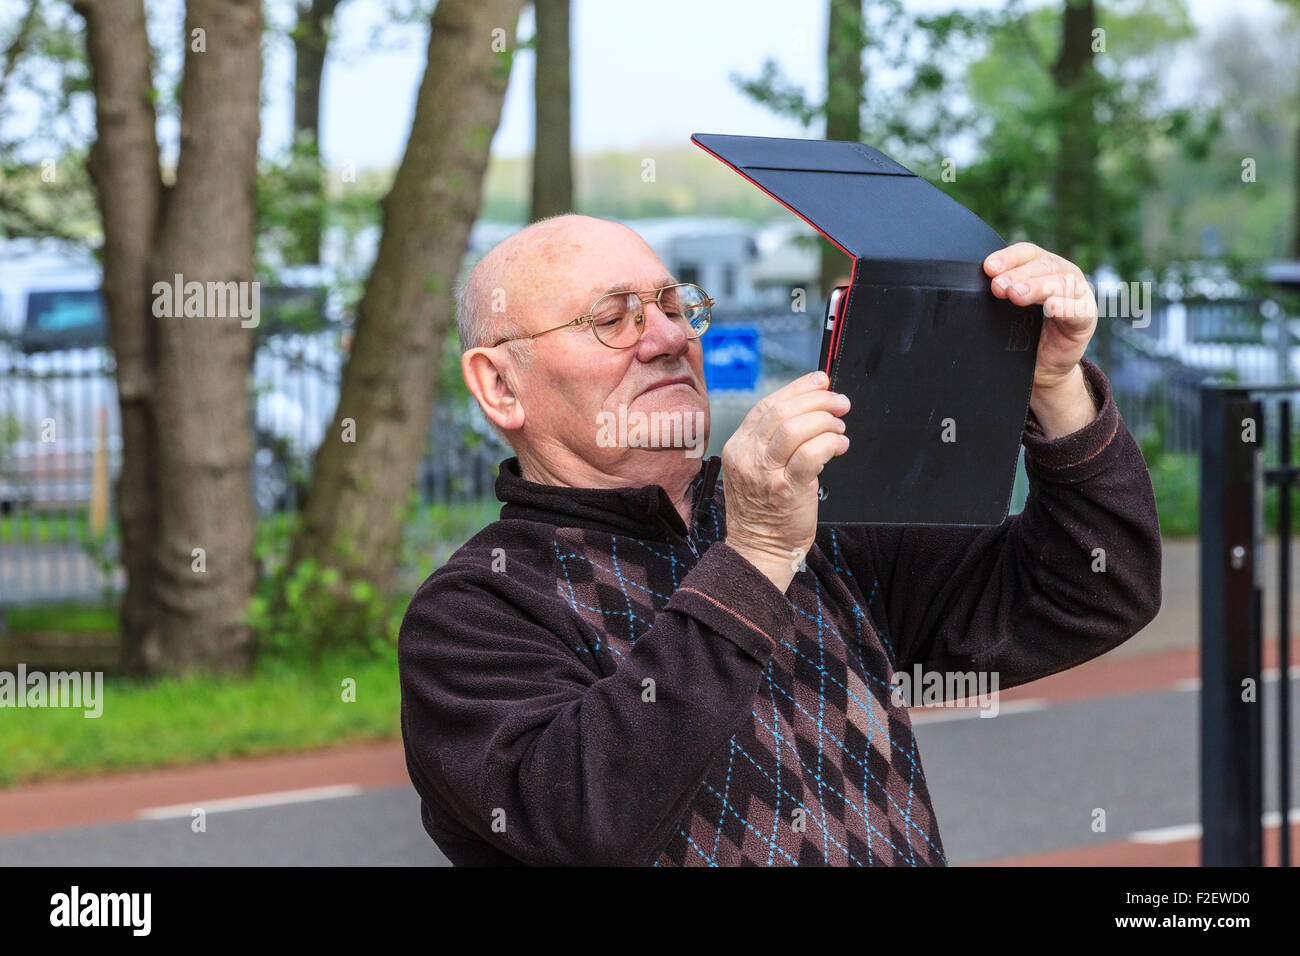 Man taking photo photographie with tablet computer Photo Stock